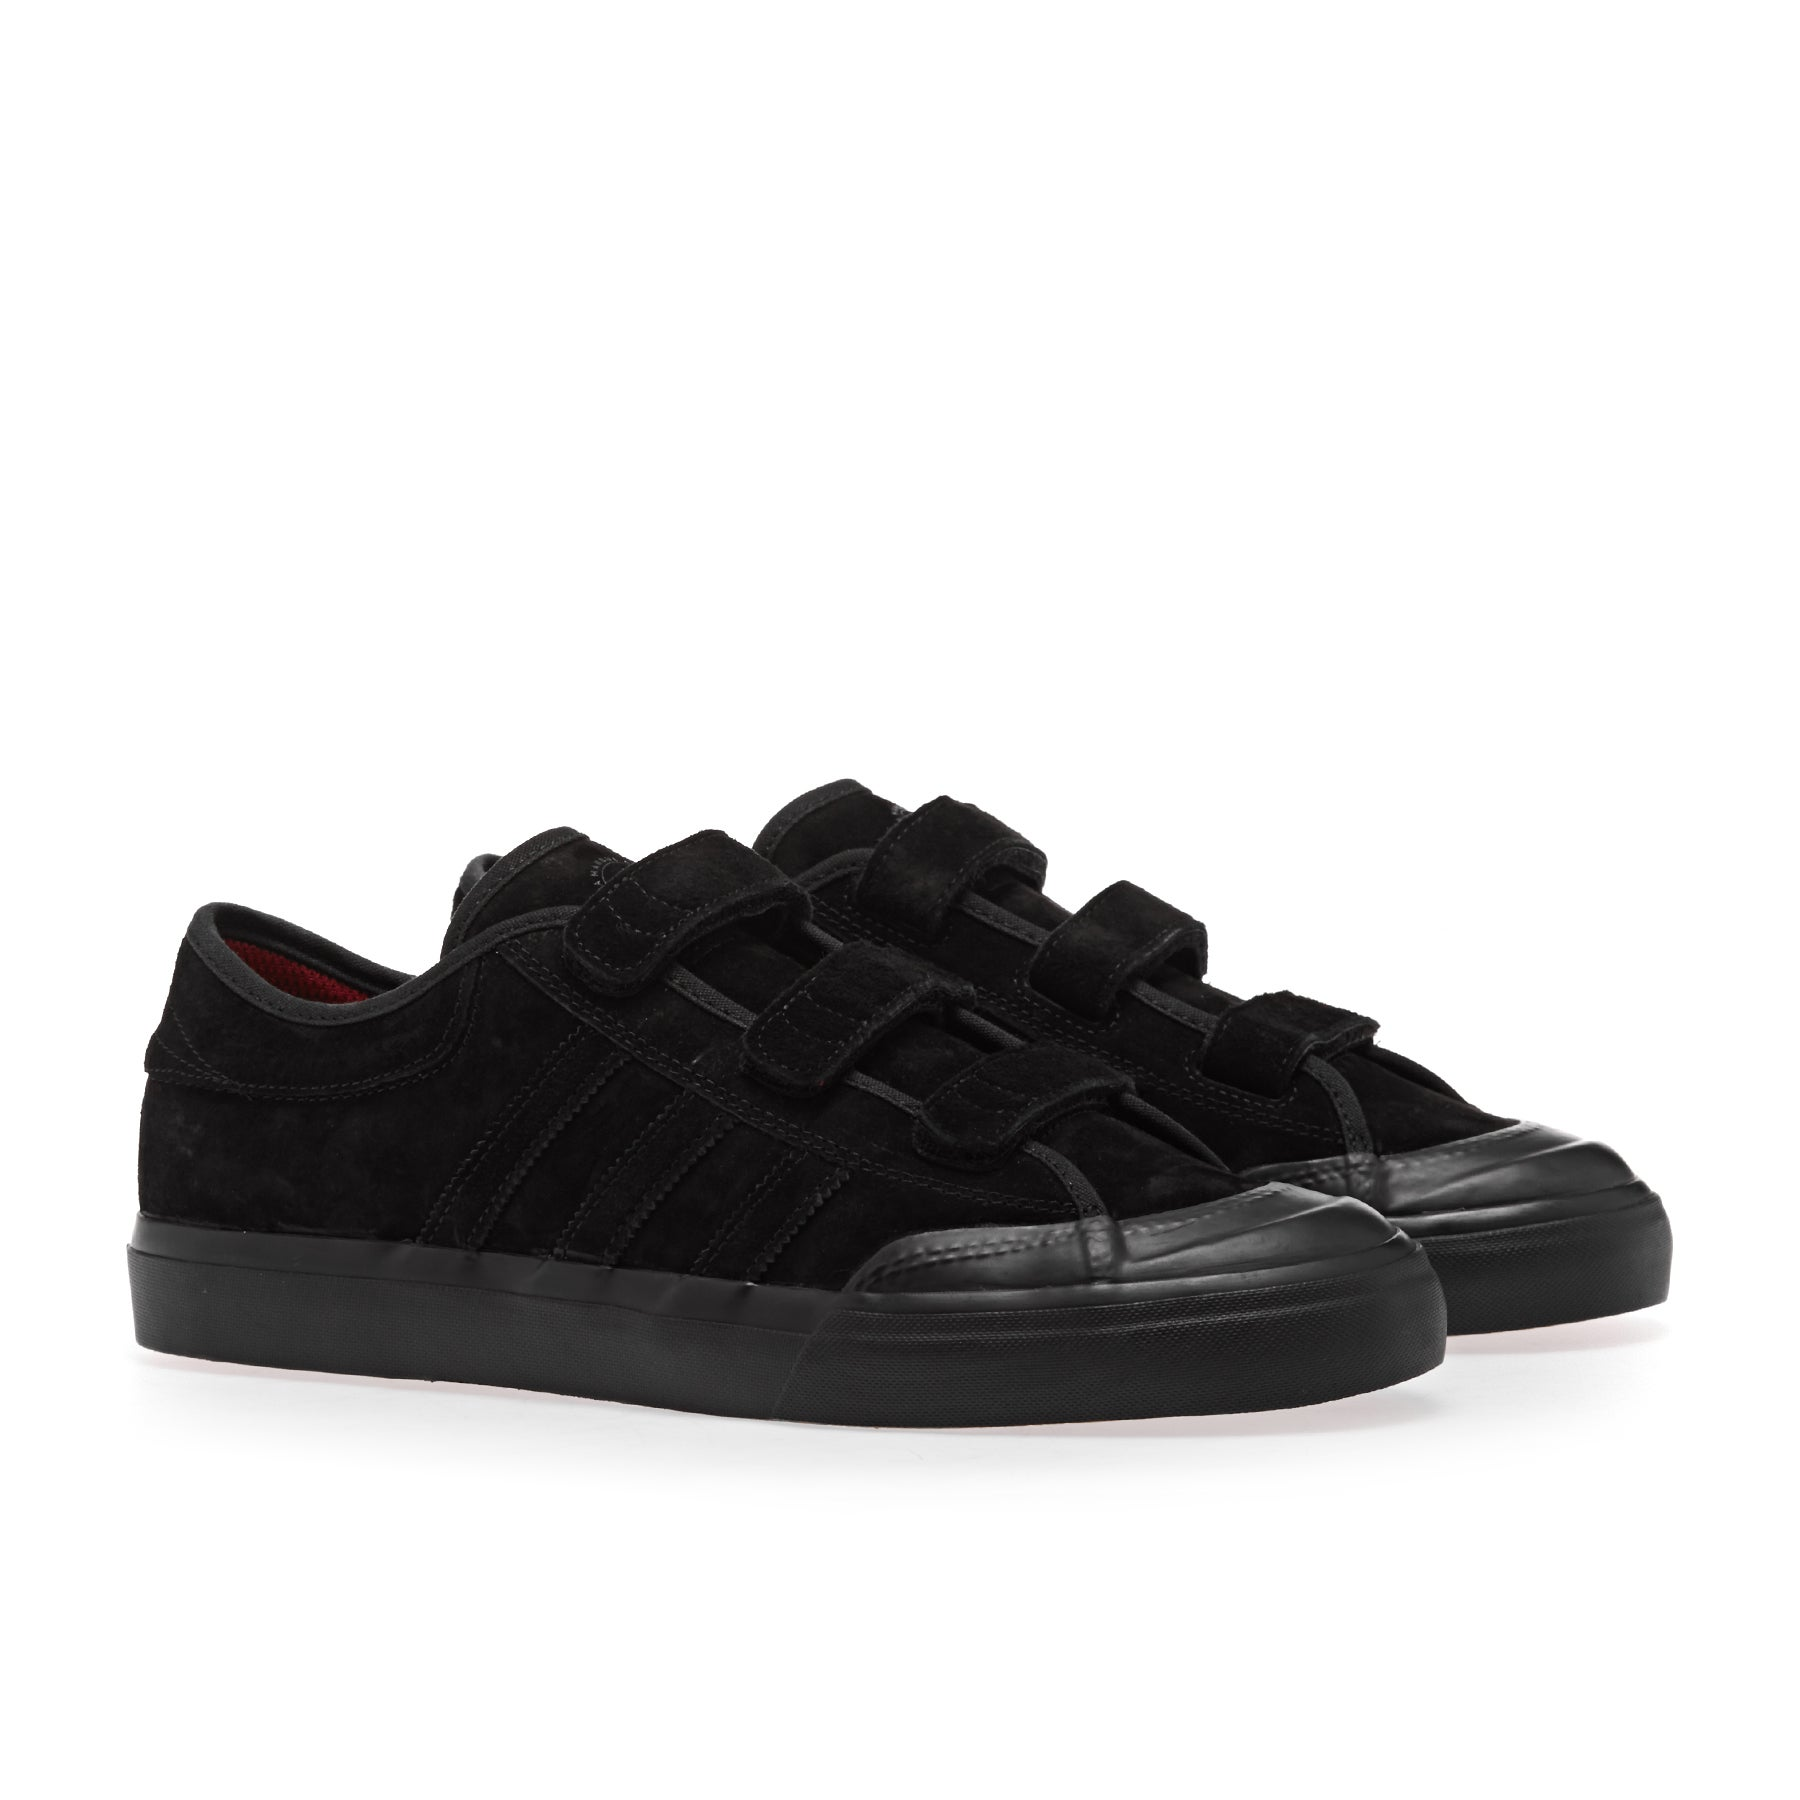 Adidas Matchcourt Cf Shoes available from Surfdome 4382fdb61